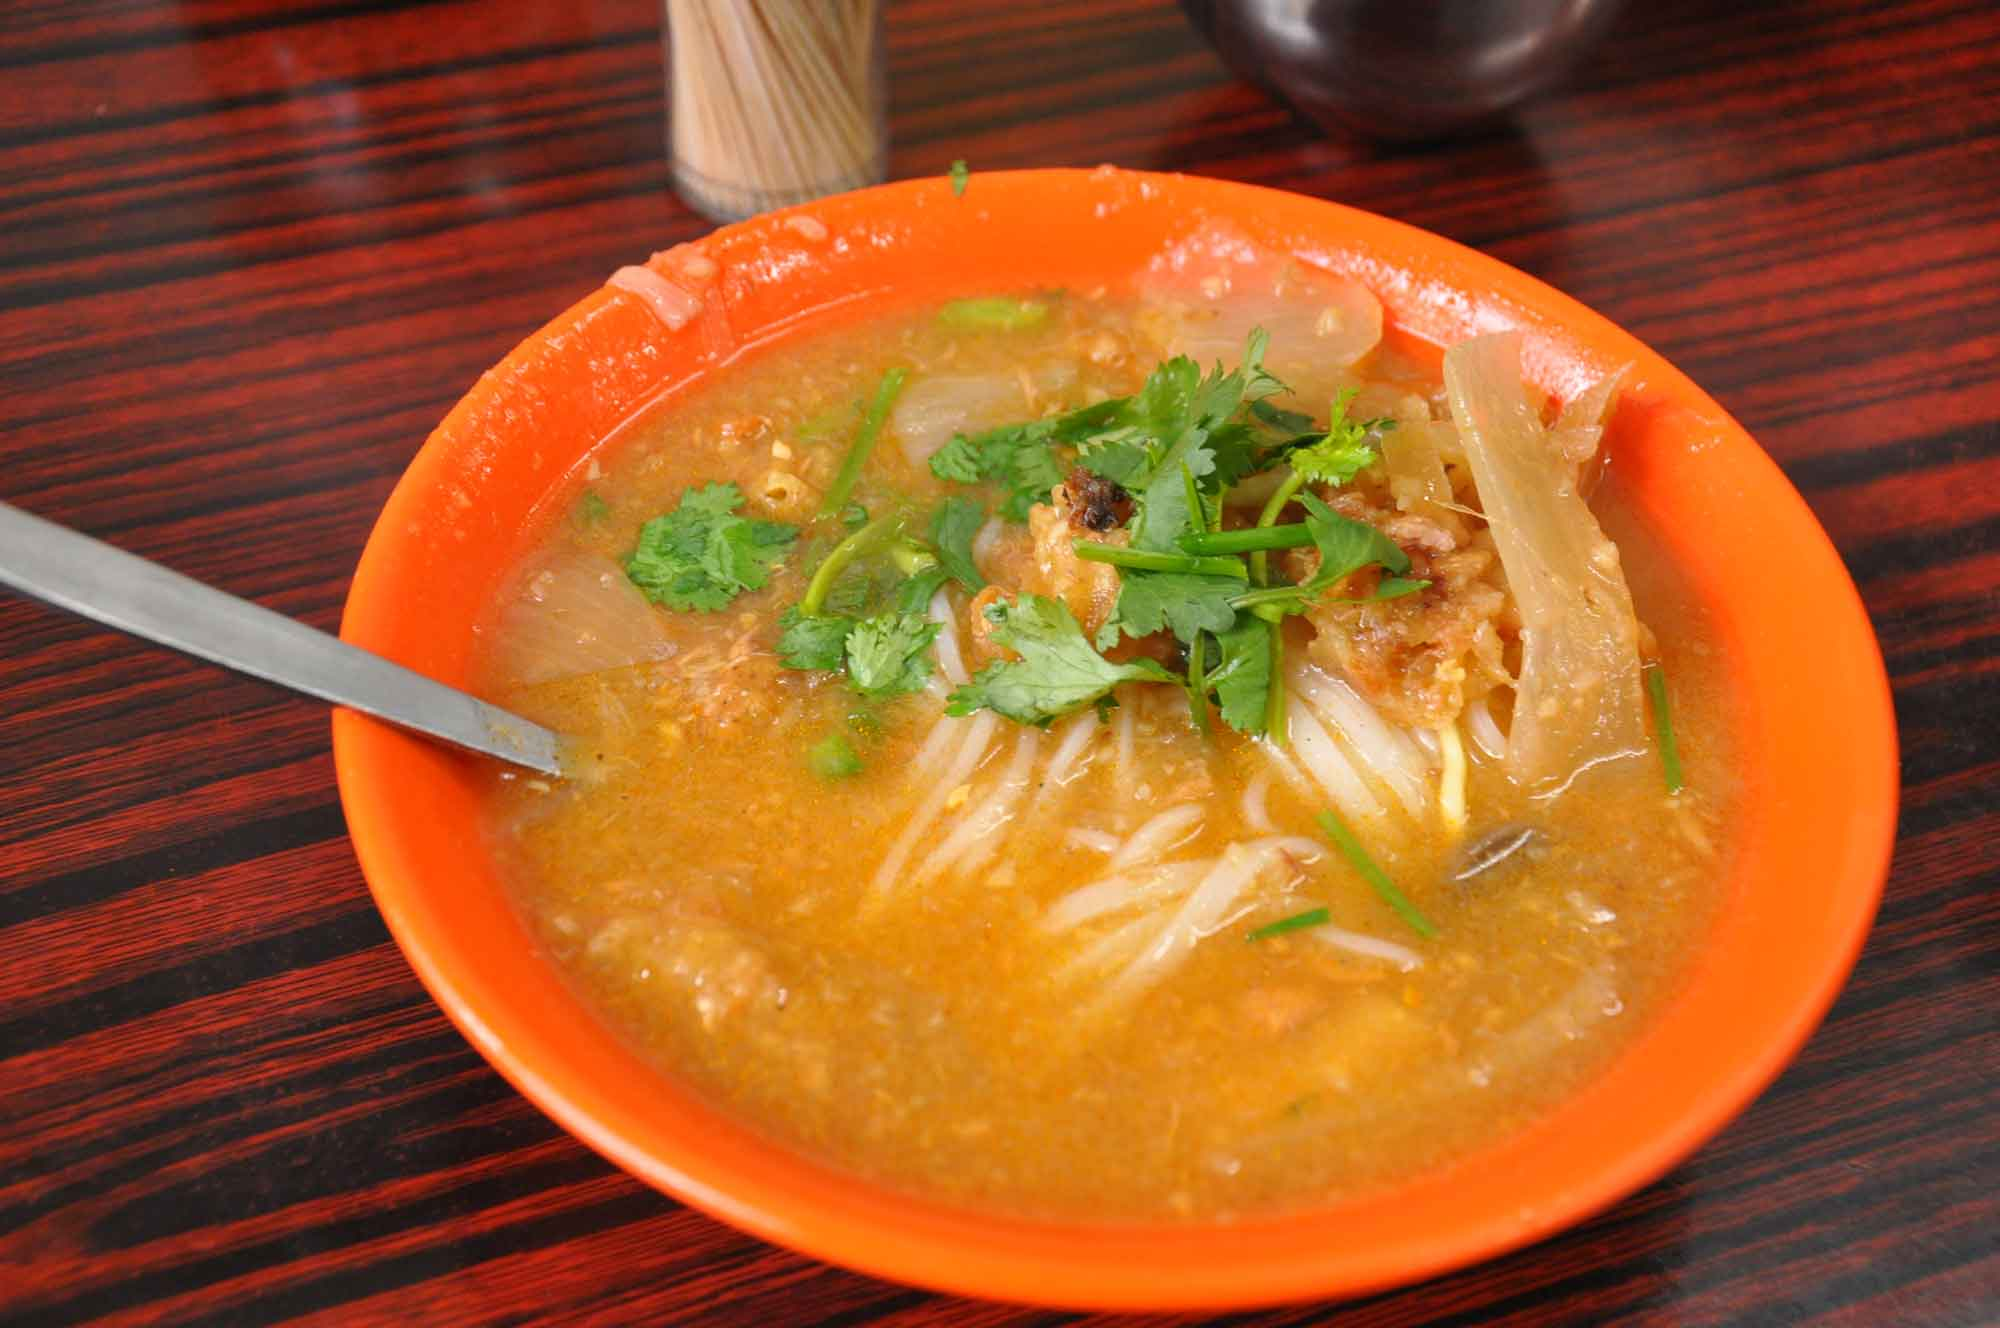 Seng Kuan fish soup with flat noodles